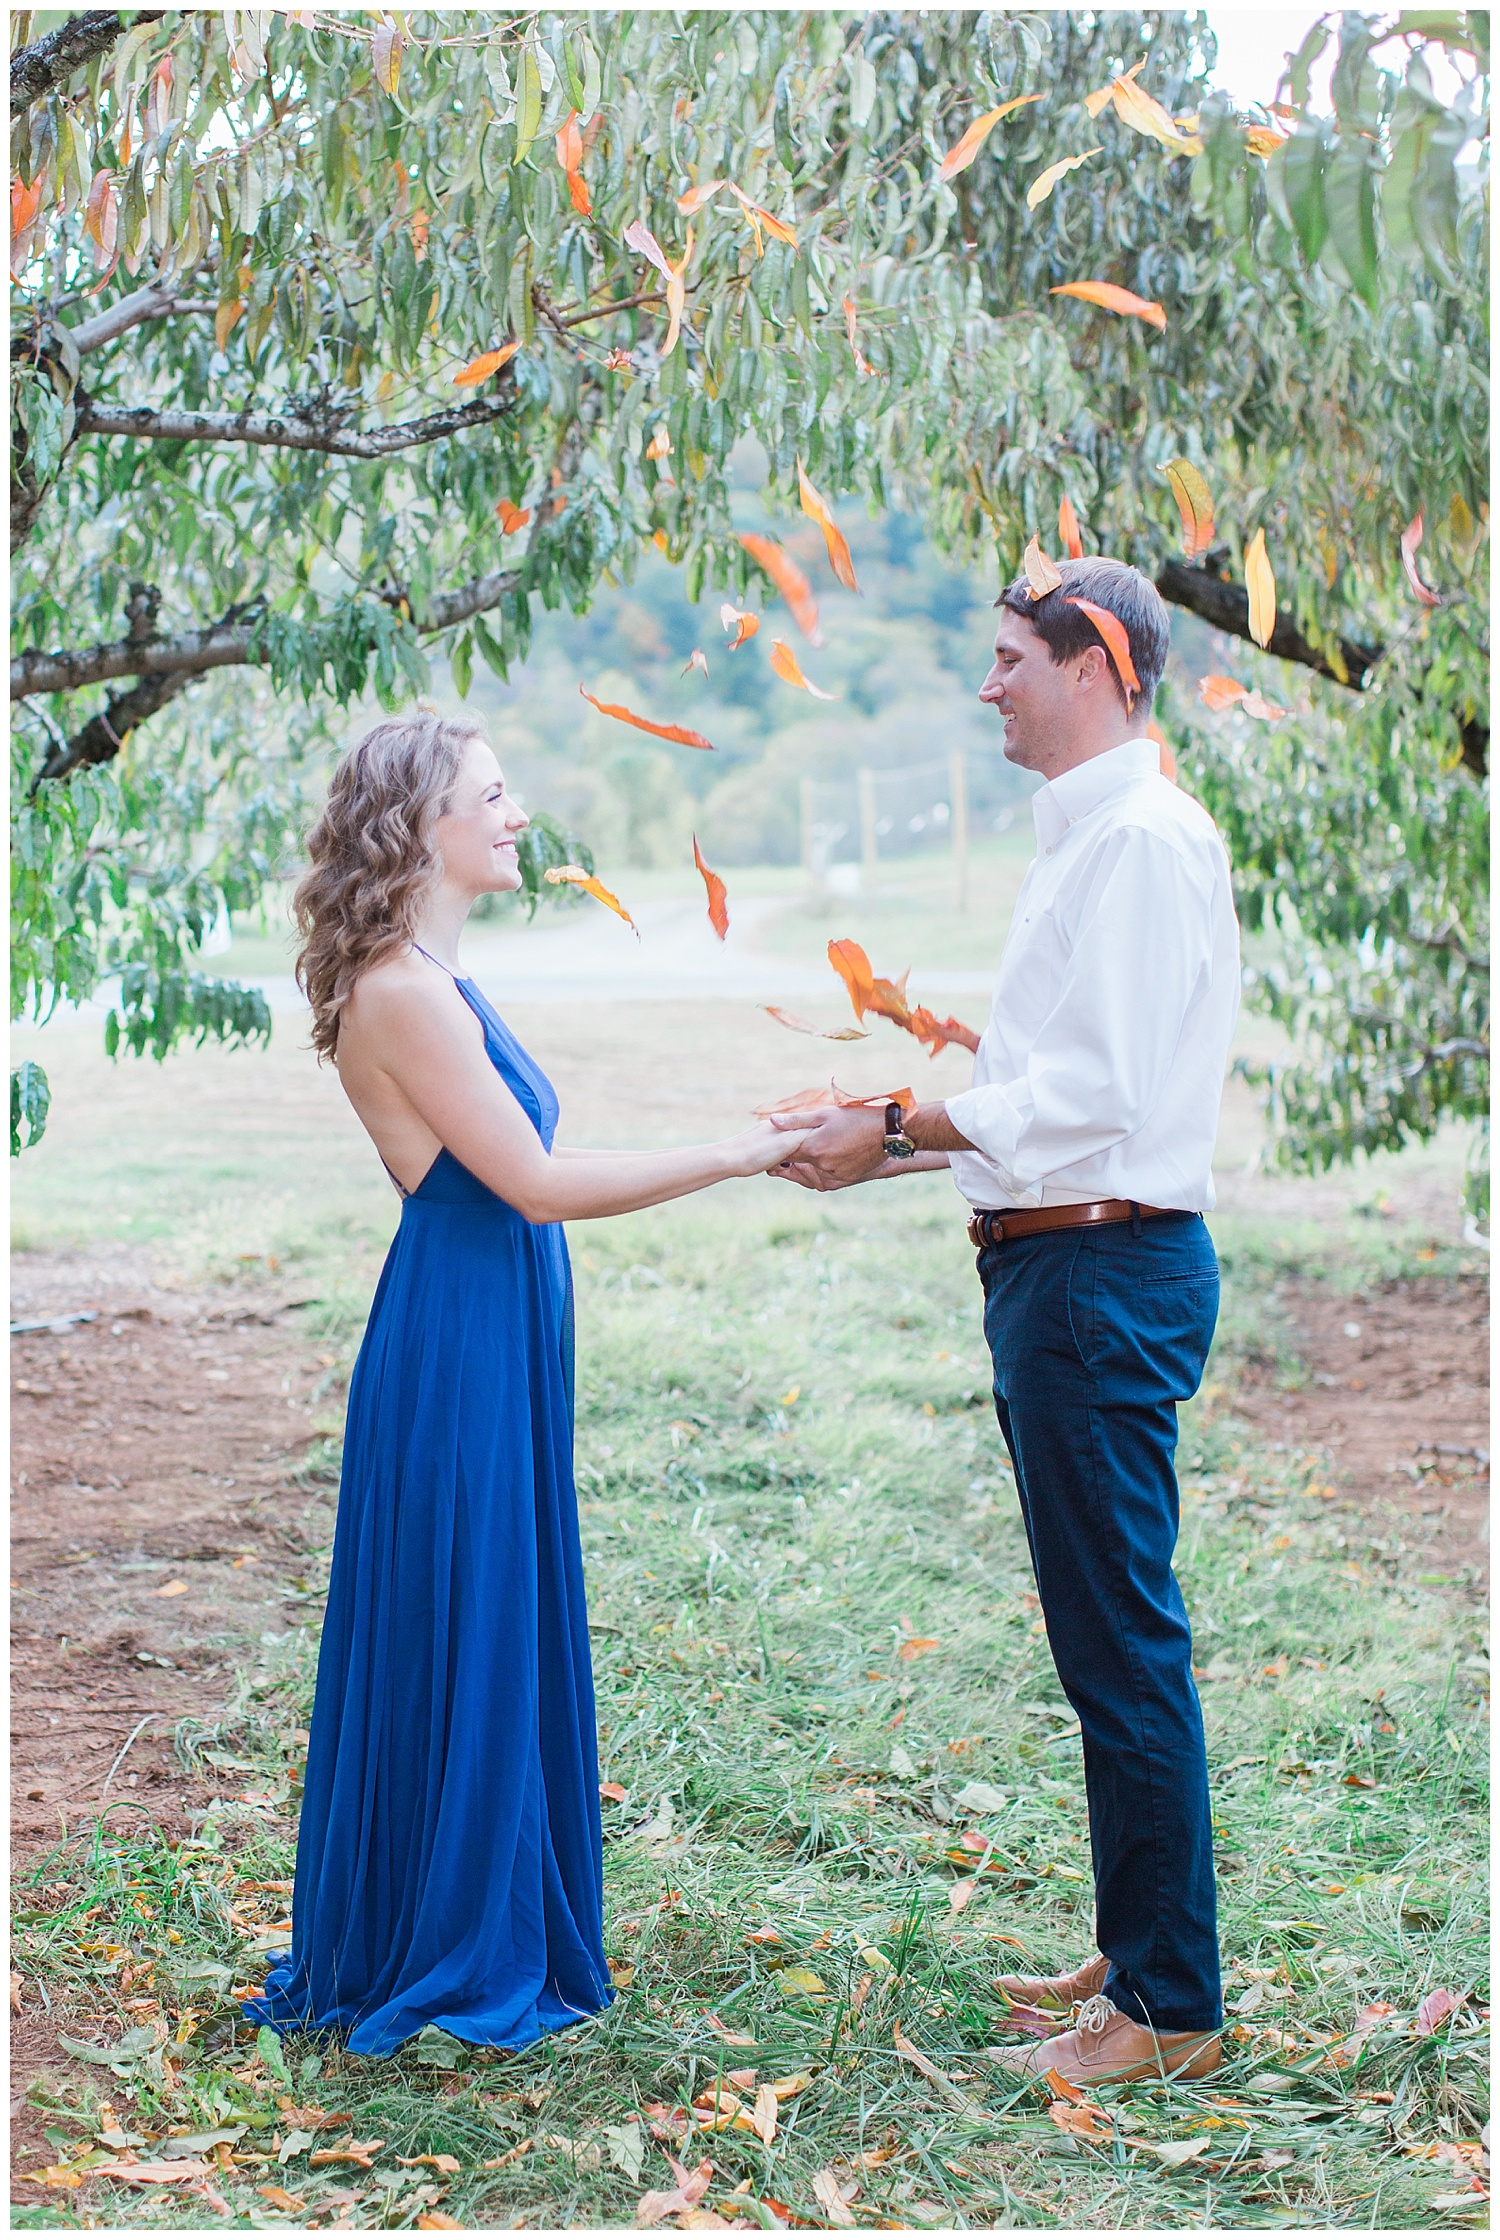 charlottesville_wedding_photographer_chiles_peach_orchard24.jpg